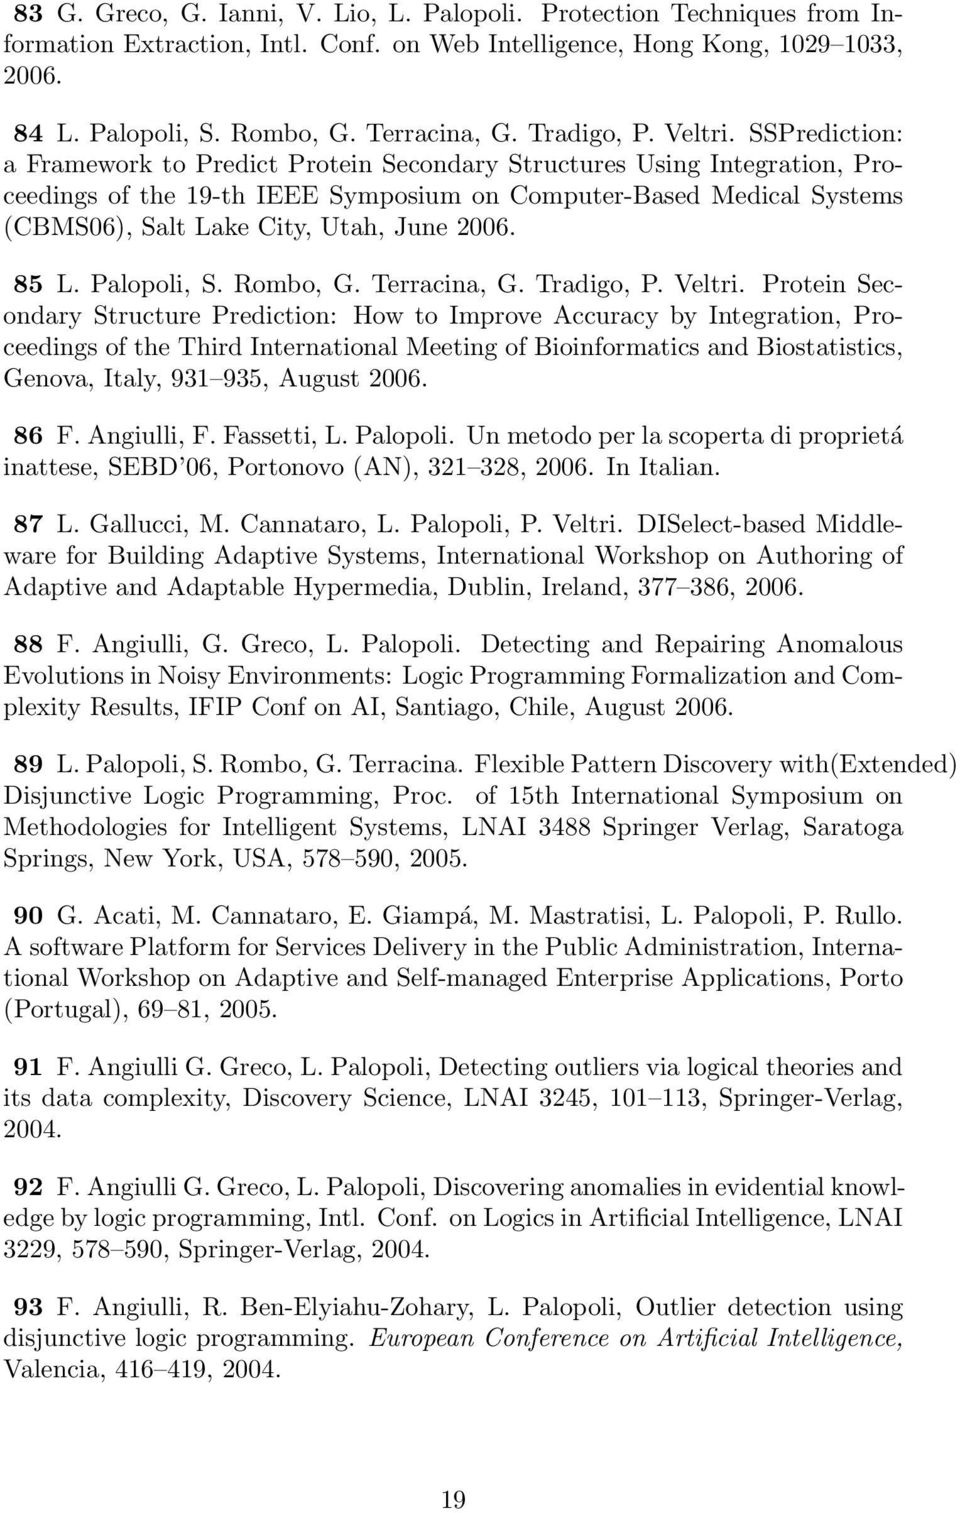 SSPrediction: a Framework to Predict Protein Secondary Structures Using Integration, Proceedings of the 19-th IEEE Symposium on Computer-Based Medical Systems (CBMS06), Salt Lake City, Utah, June